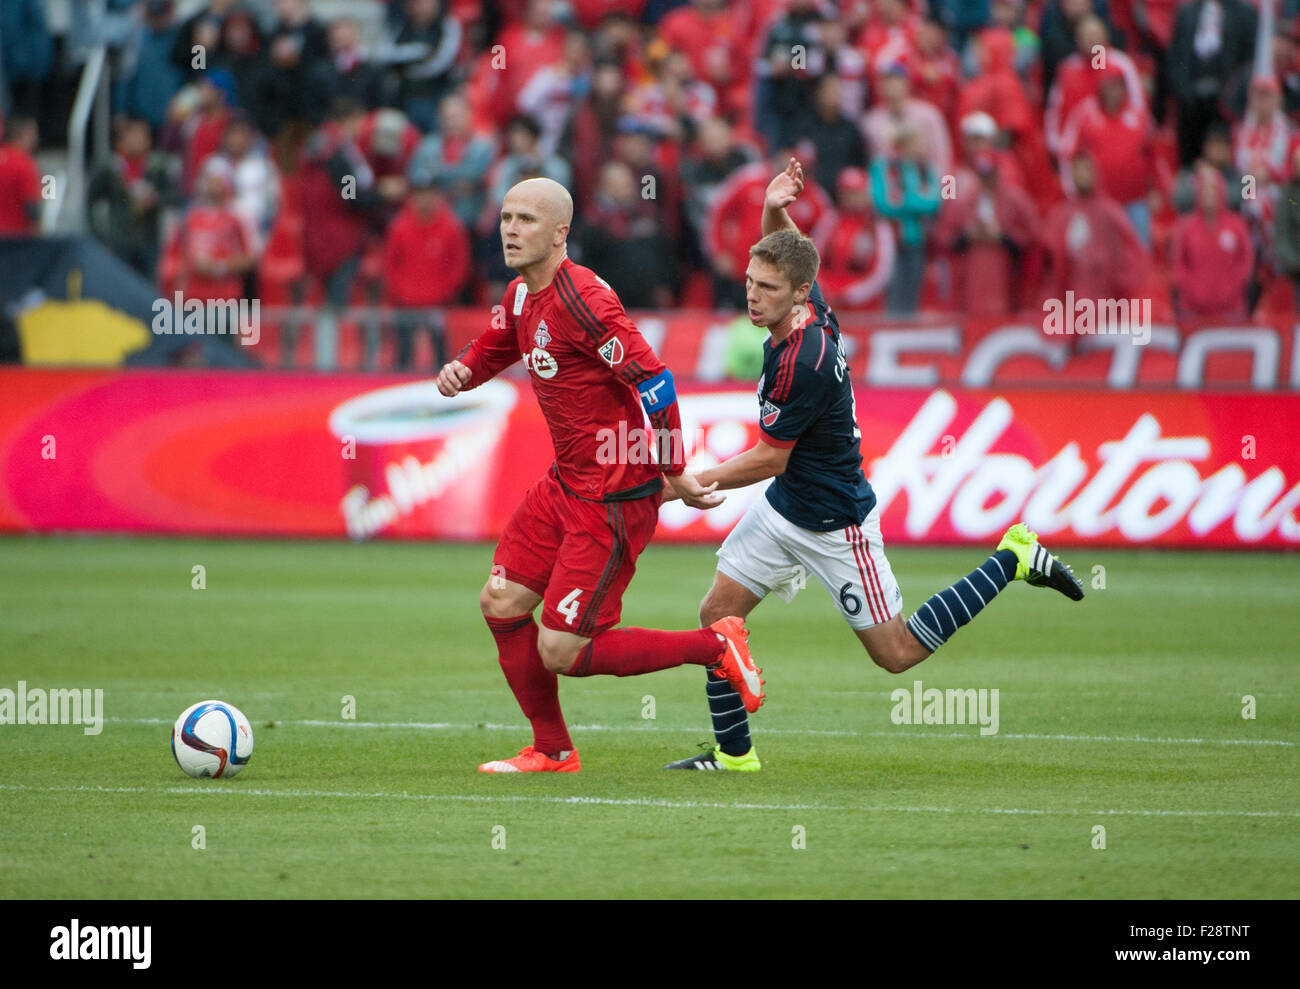 Toronto, Ontario, Canada. 13th September, 2015. Toronto FC midfielder Michael Bradley (4) chased by New England - Stock Image